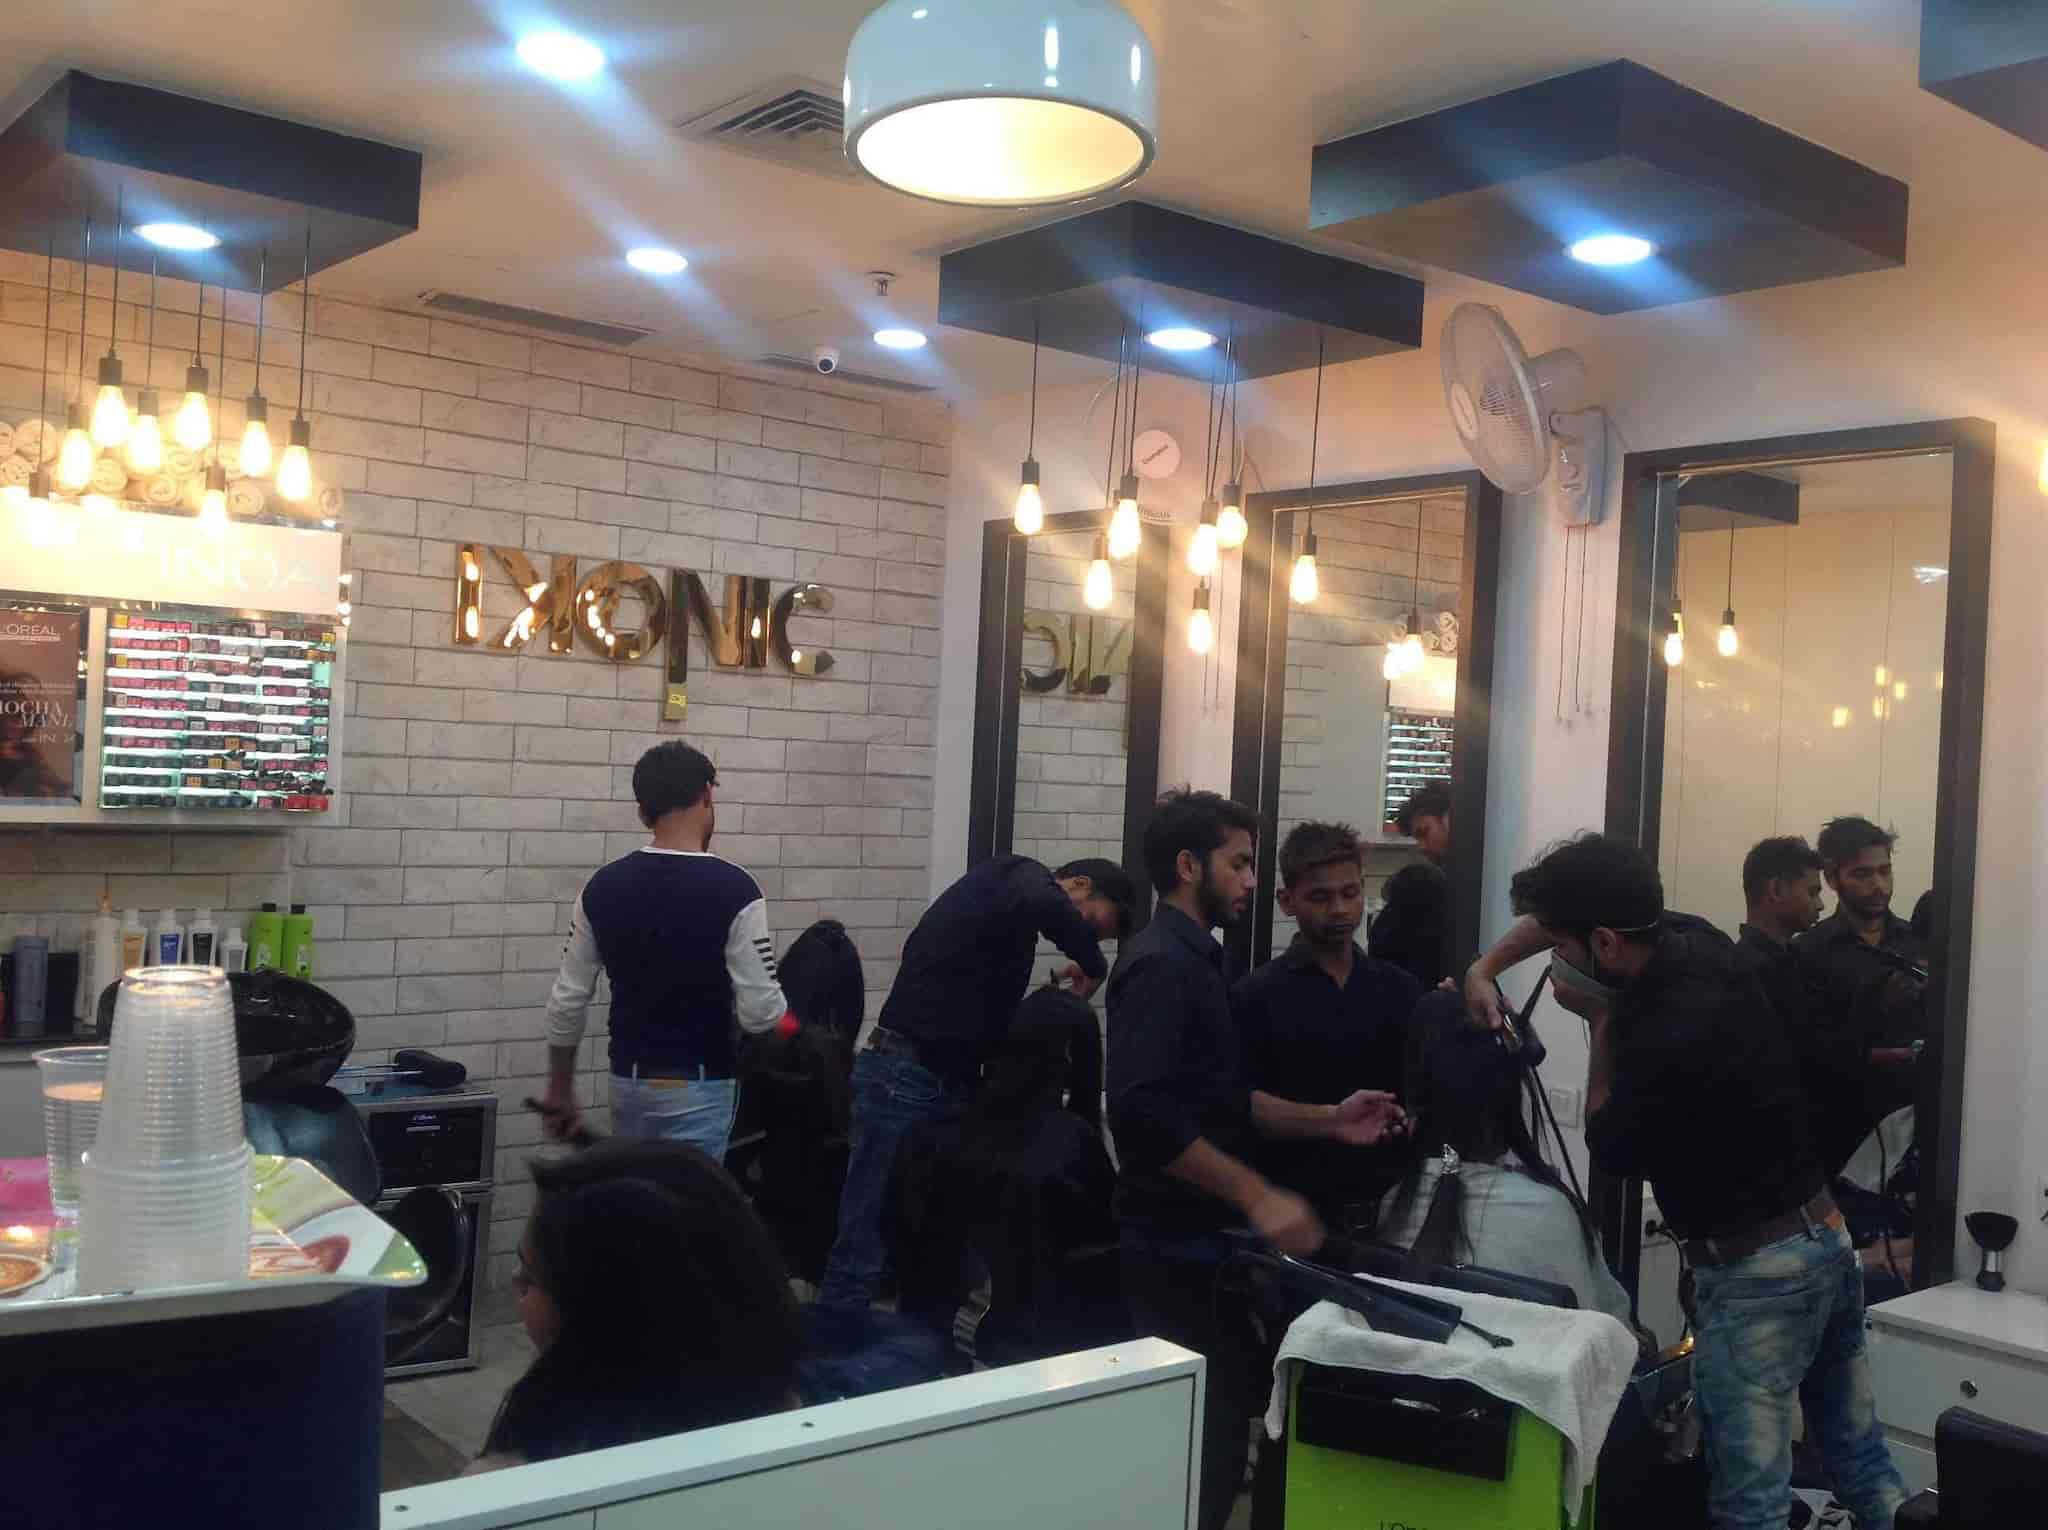 Ikonic Unisex Salon, Nirman Vihar - Salons in Delhi - Justdial